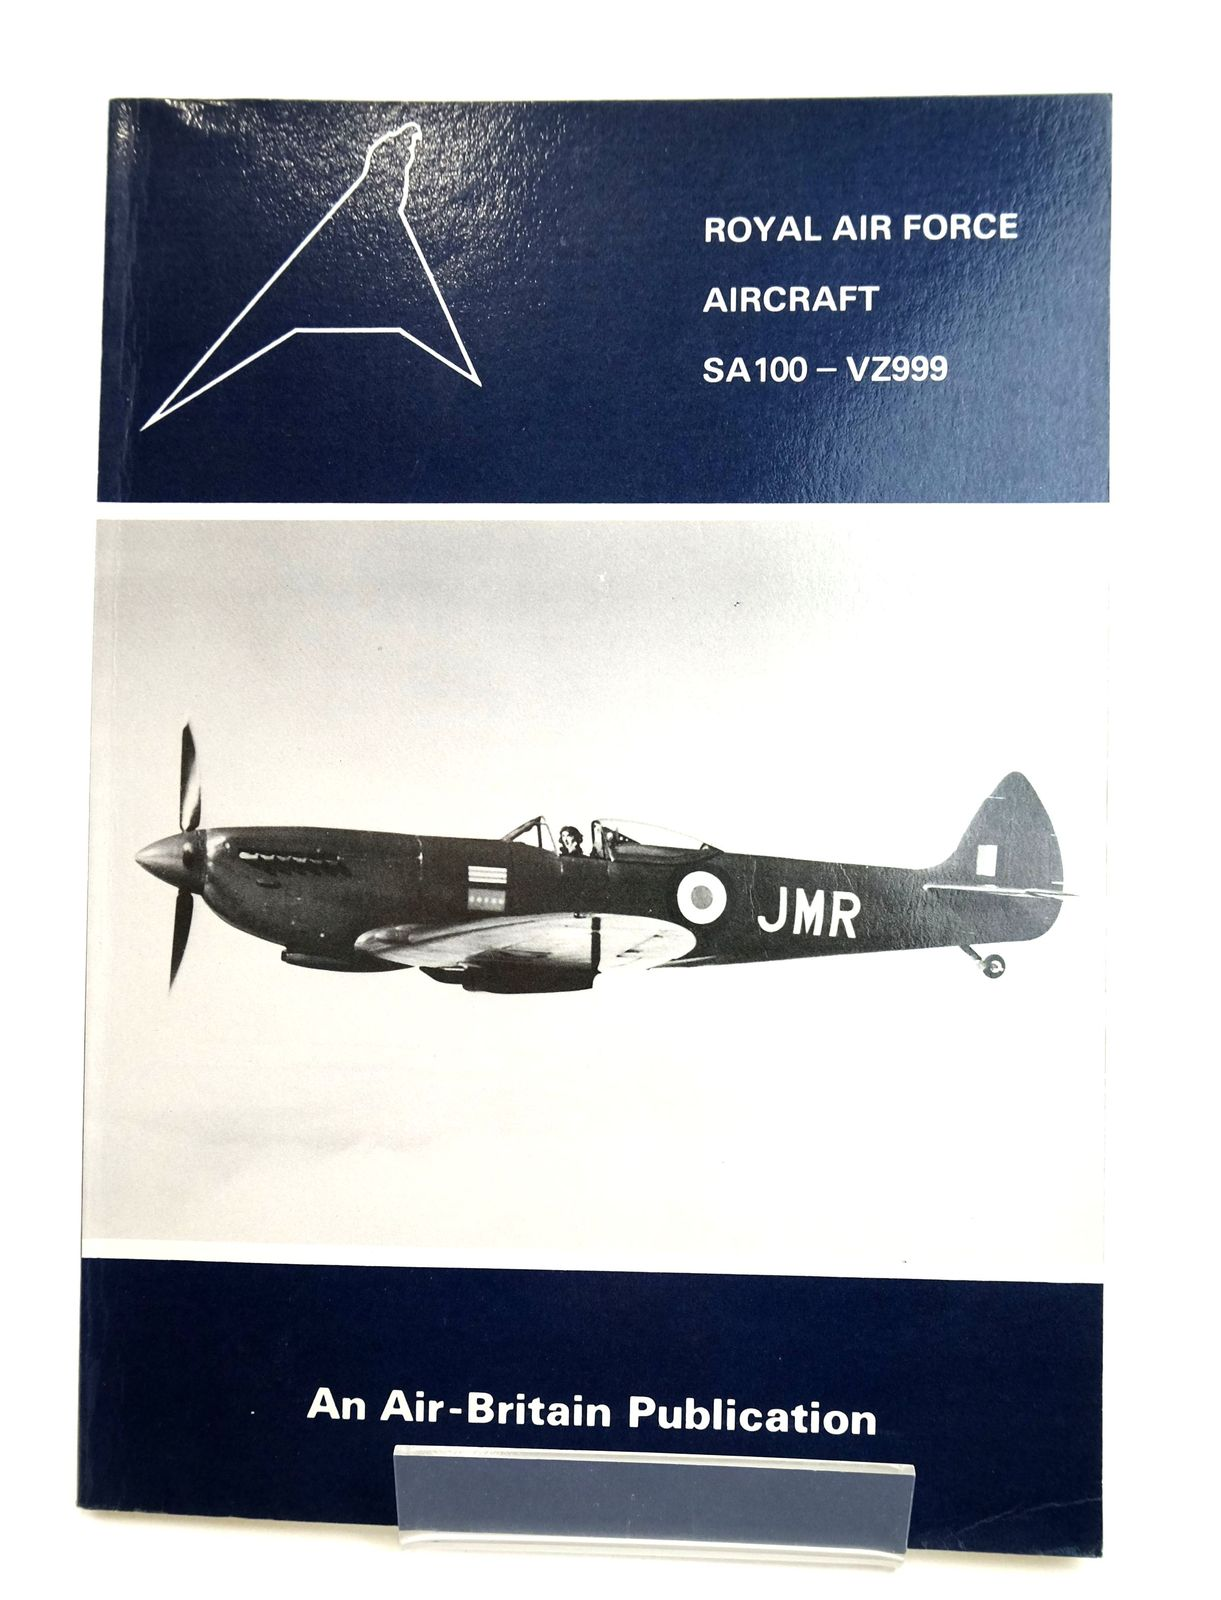 Photo of ROYAL AIR FORCE AIRCRAFT SA100 - VZ999 written by Halley, James J. published by Air-Britain (Historians) Ltd. (STOCK CODE: 1819141)  for sale by Stella & Rose's Books